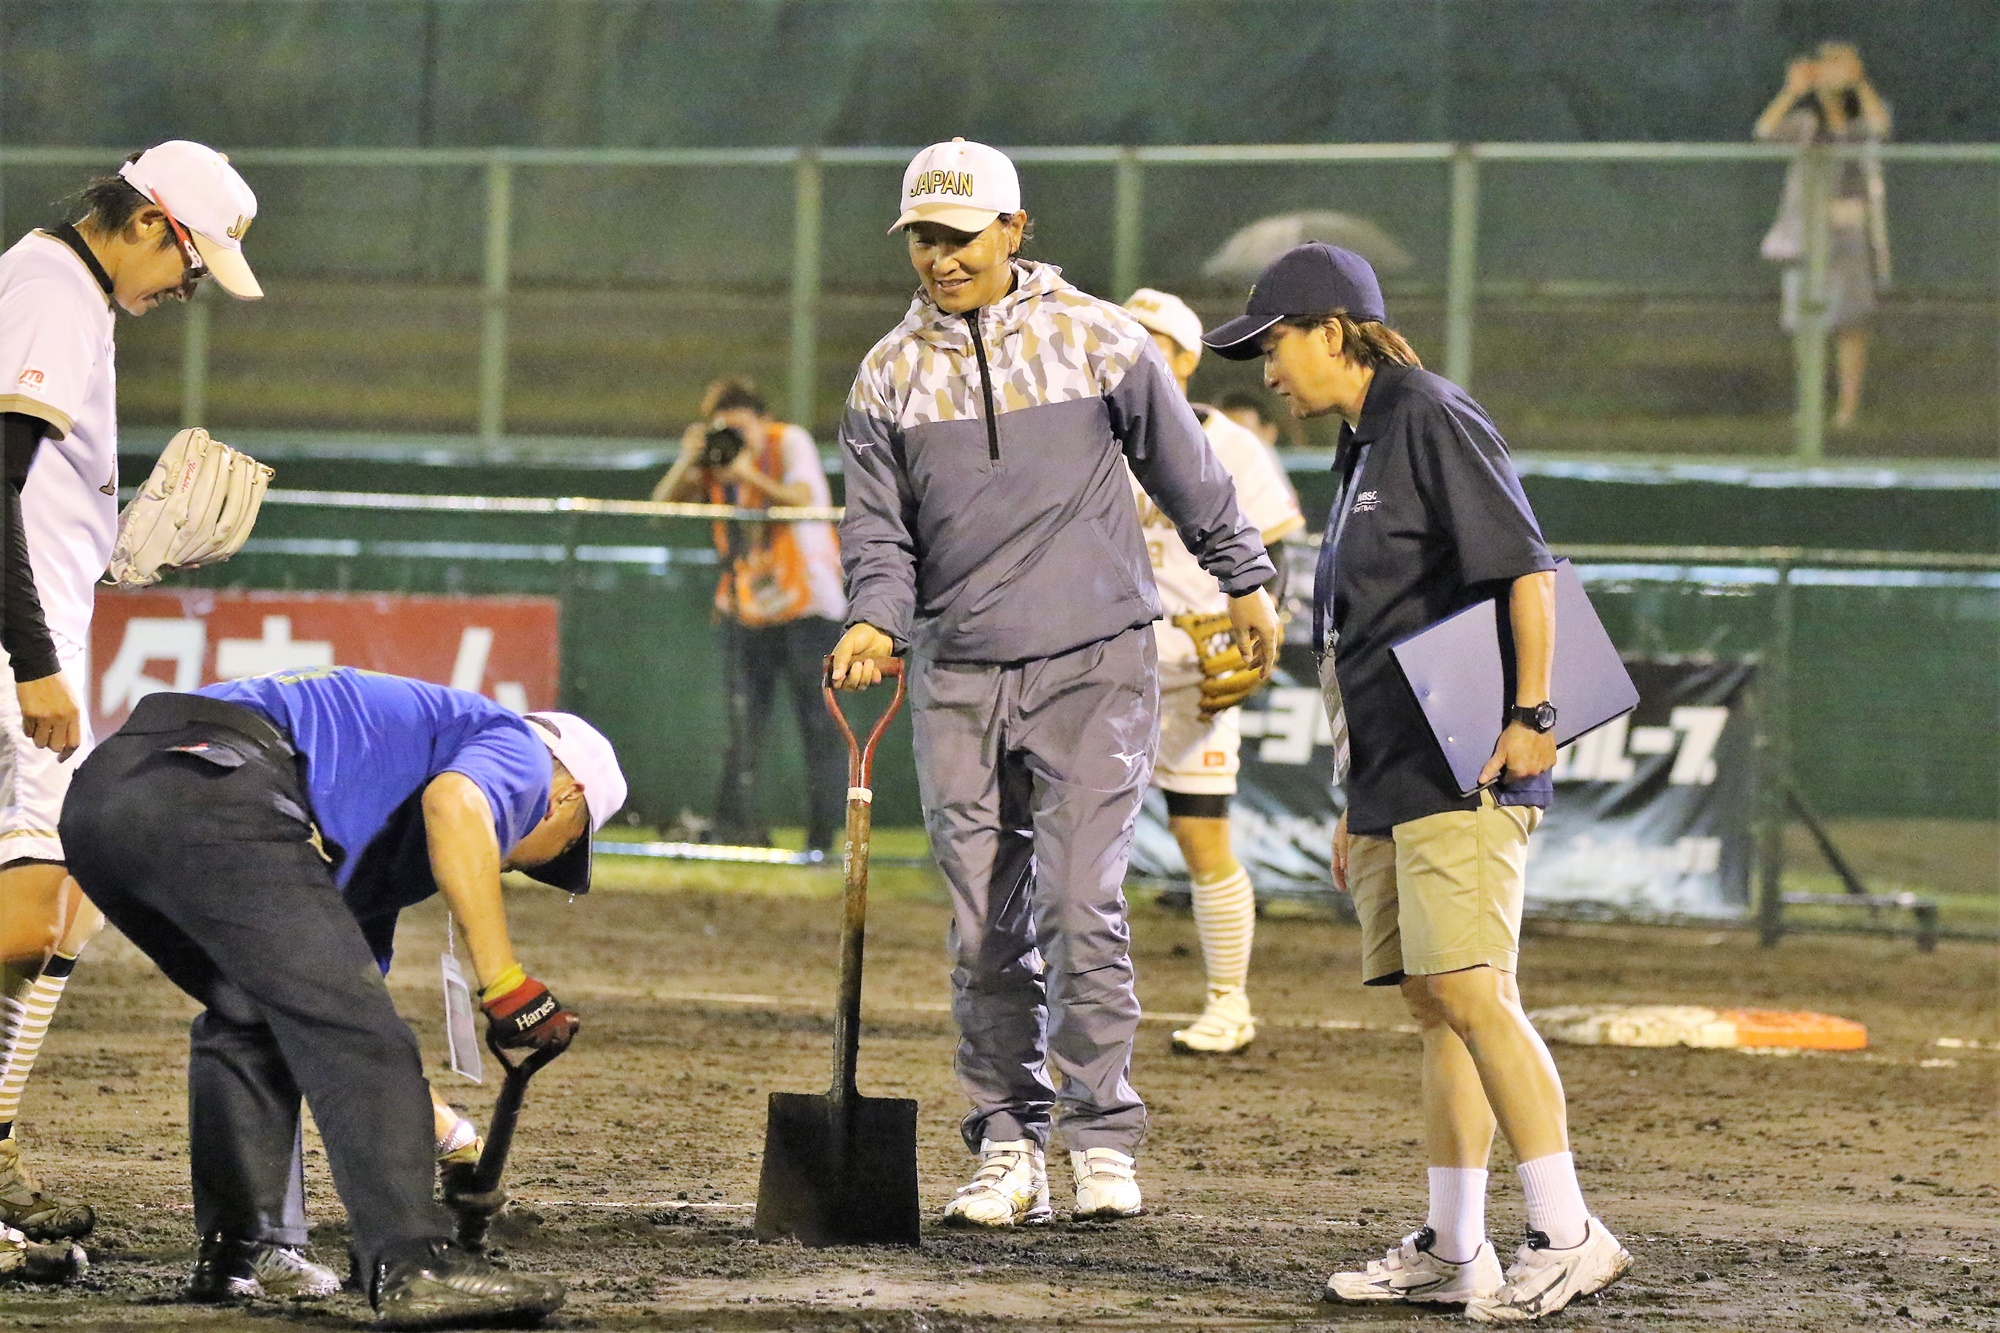 On a rainy night, mud around the rubber didn't help pitchers